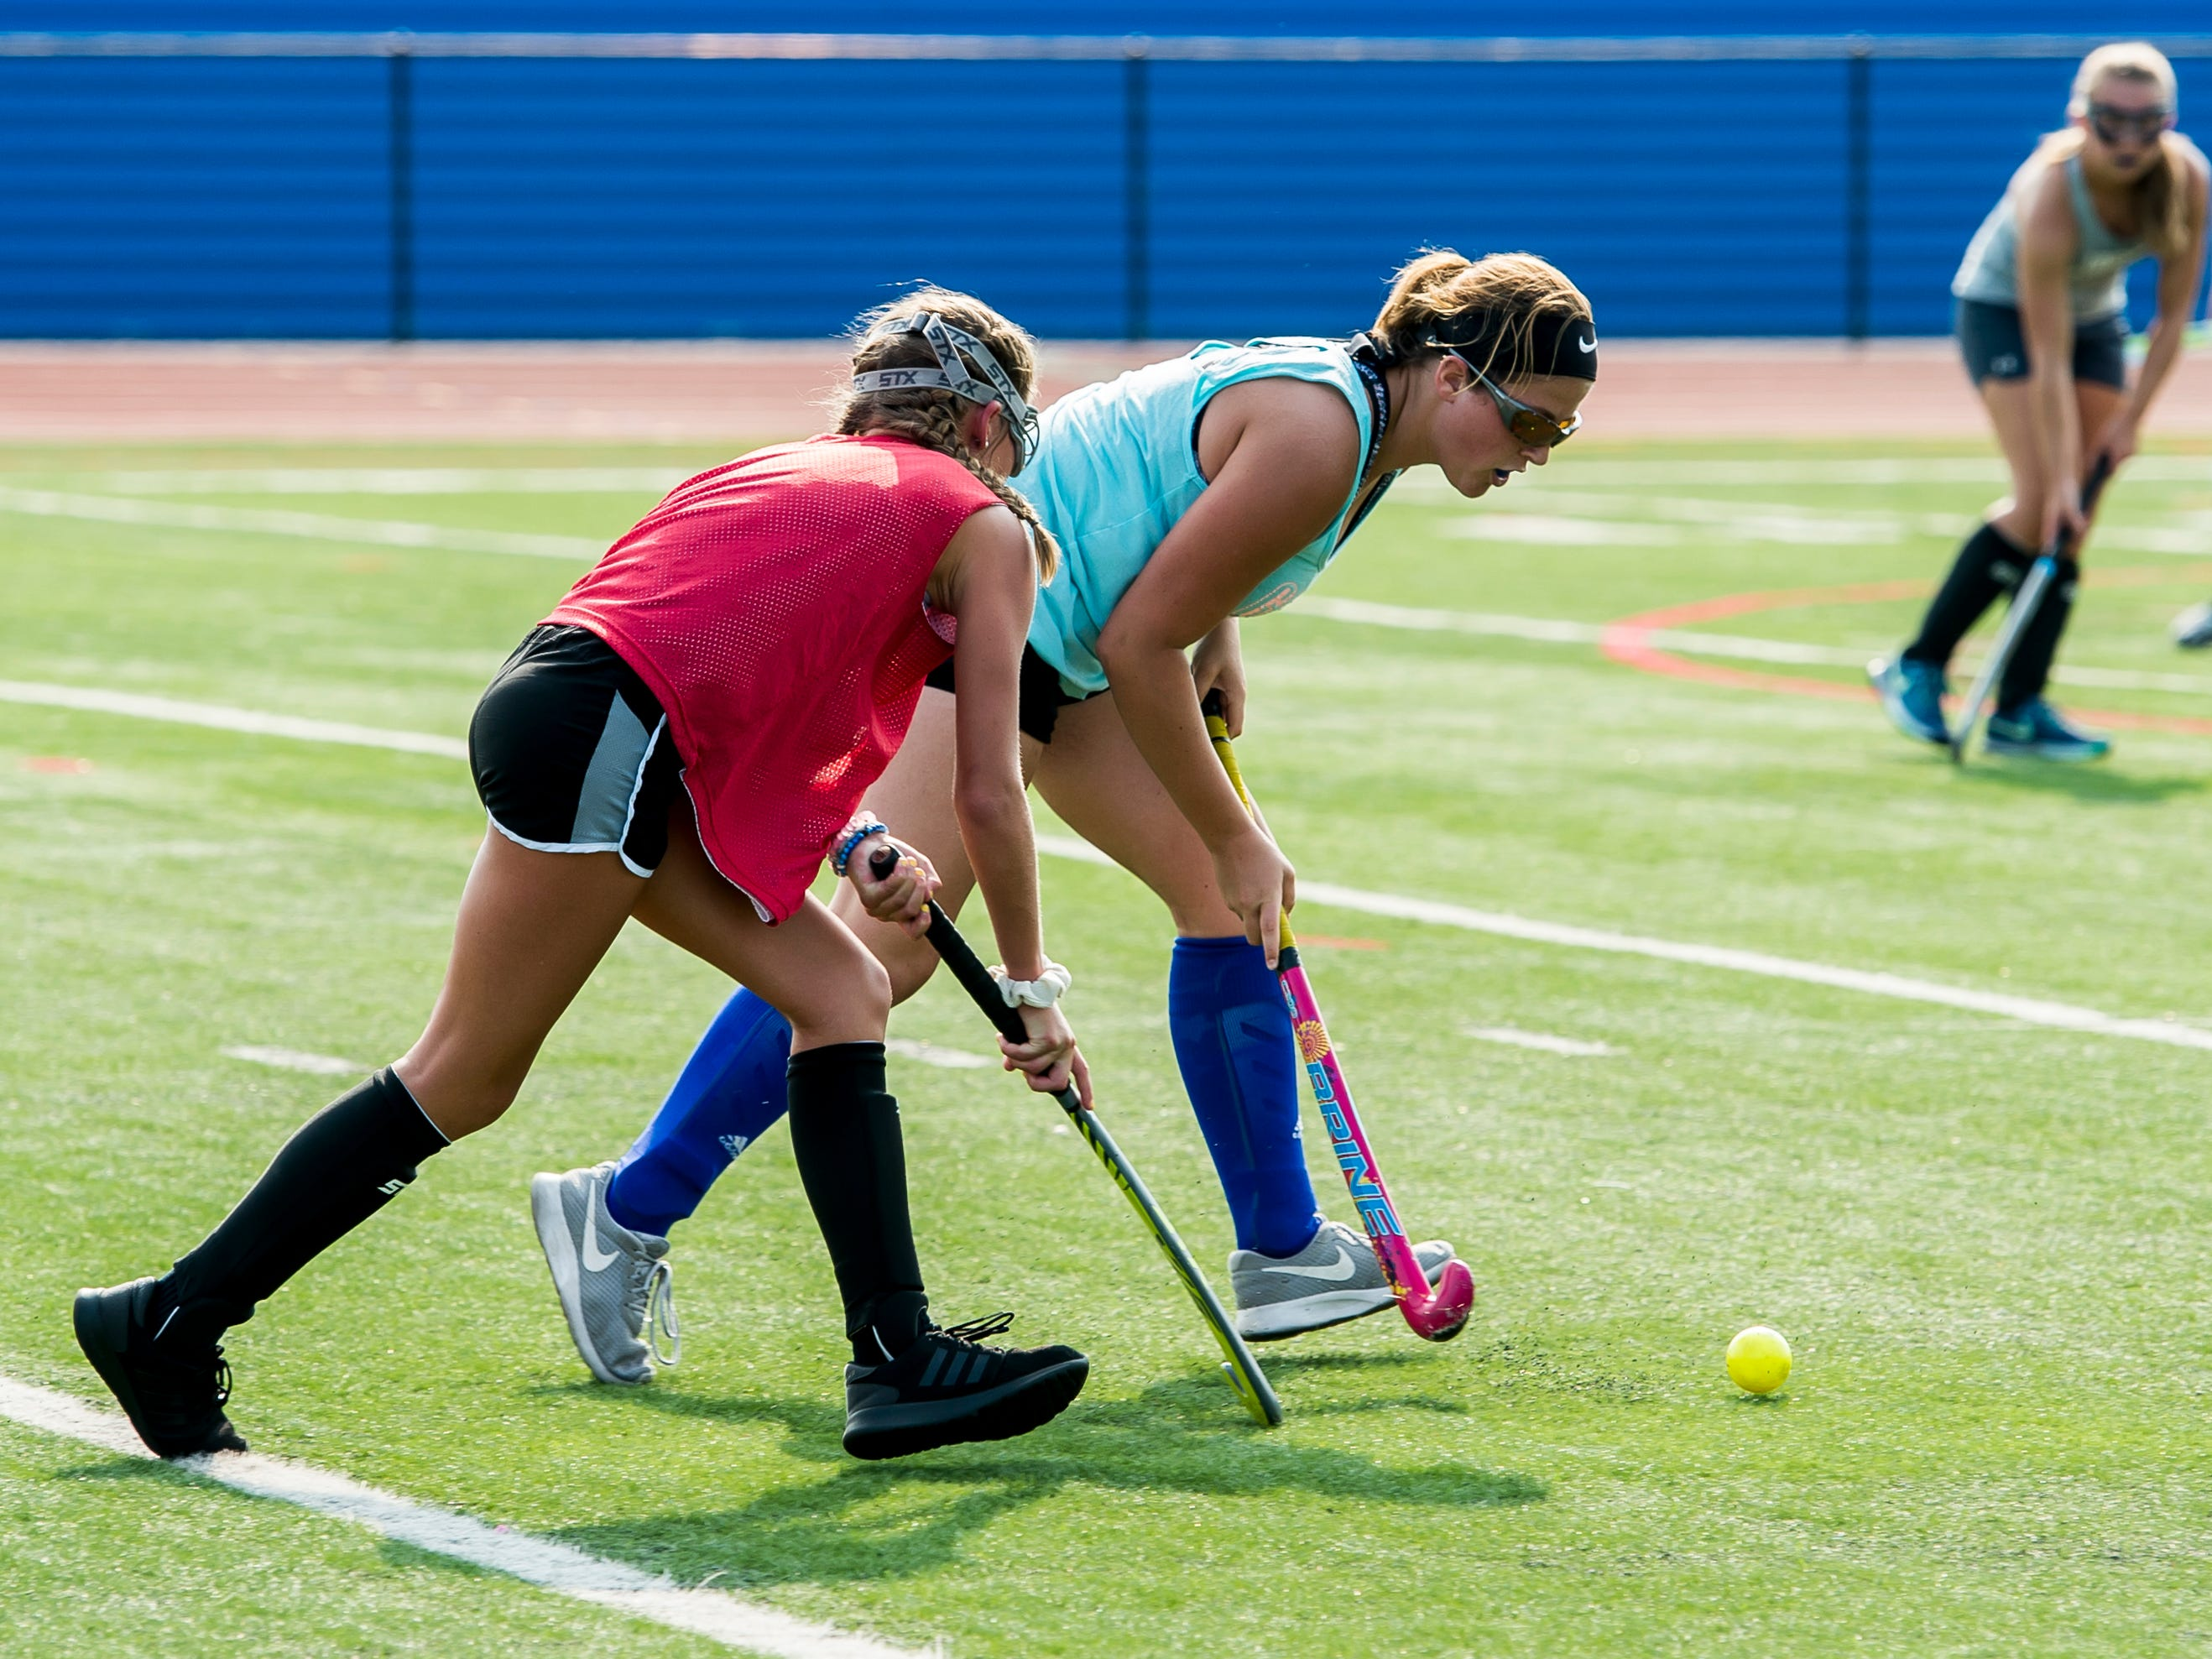 Spring Grove field hockey players Kaylee Grubb, left, and Grace Slenker chase after the ball during practice on Wednesday, August 15, 2018.